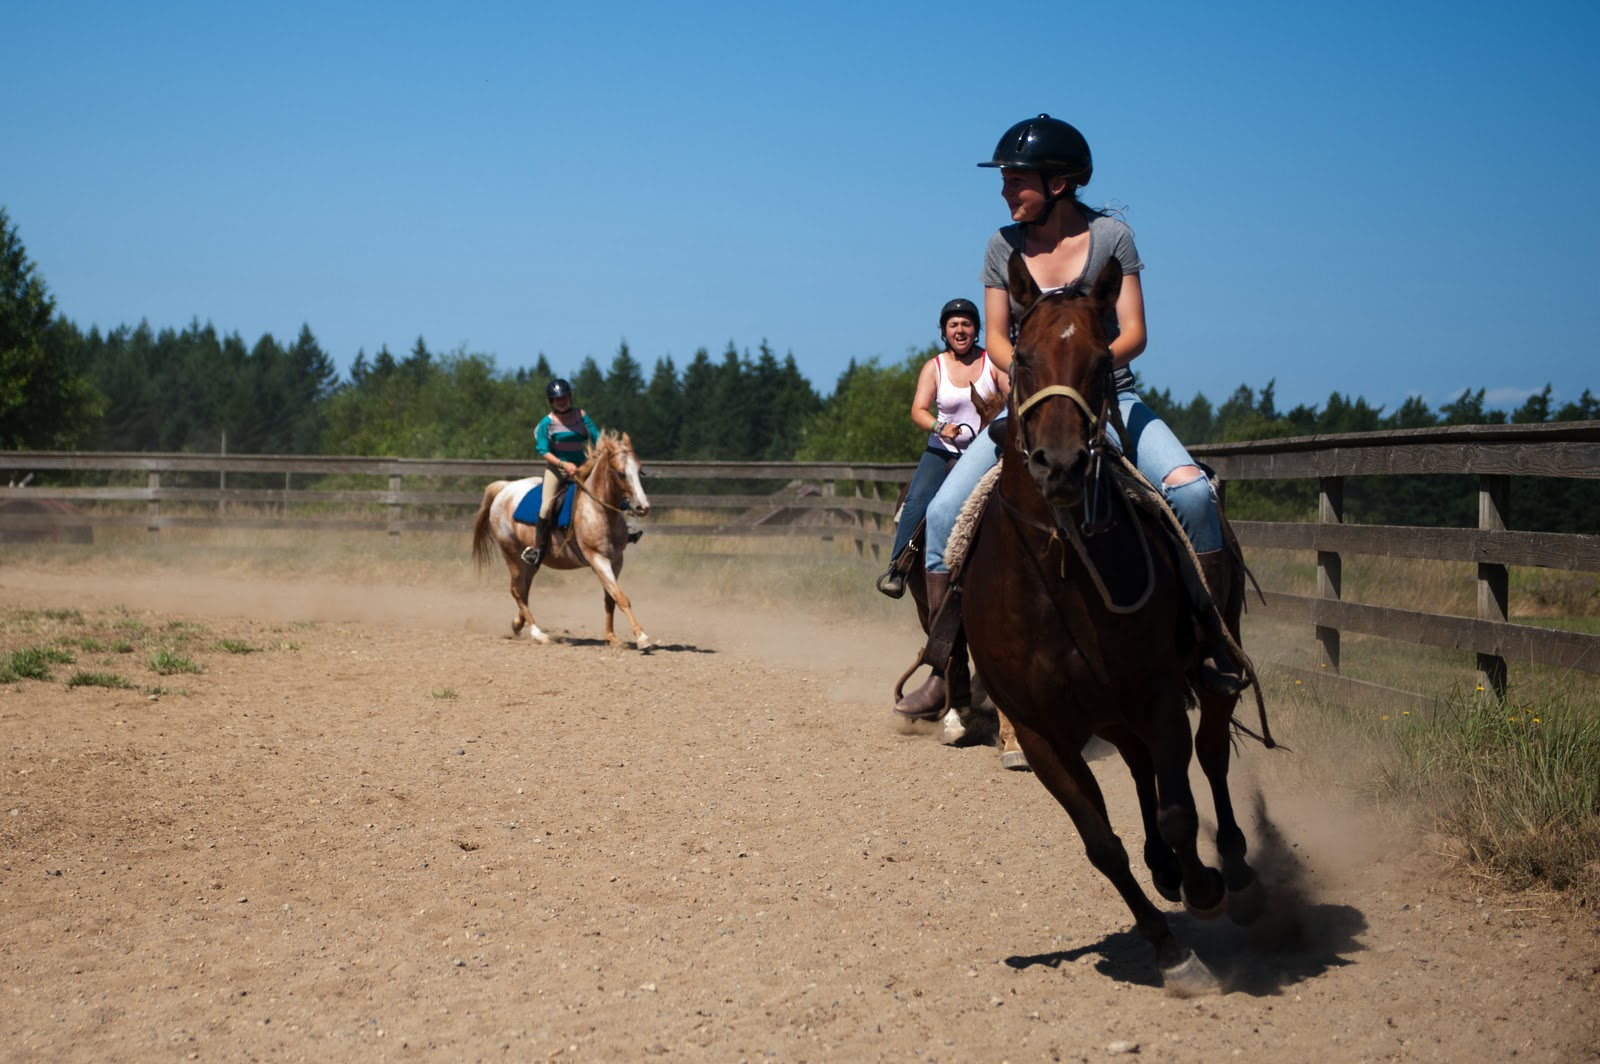 YMCA Camp Orkila: The Blog: Riding Lessons